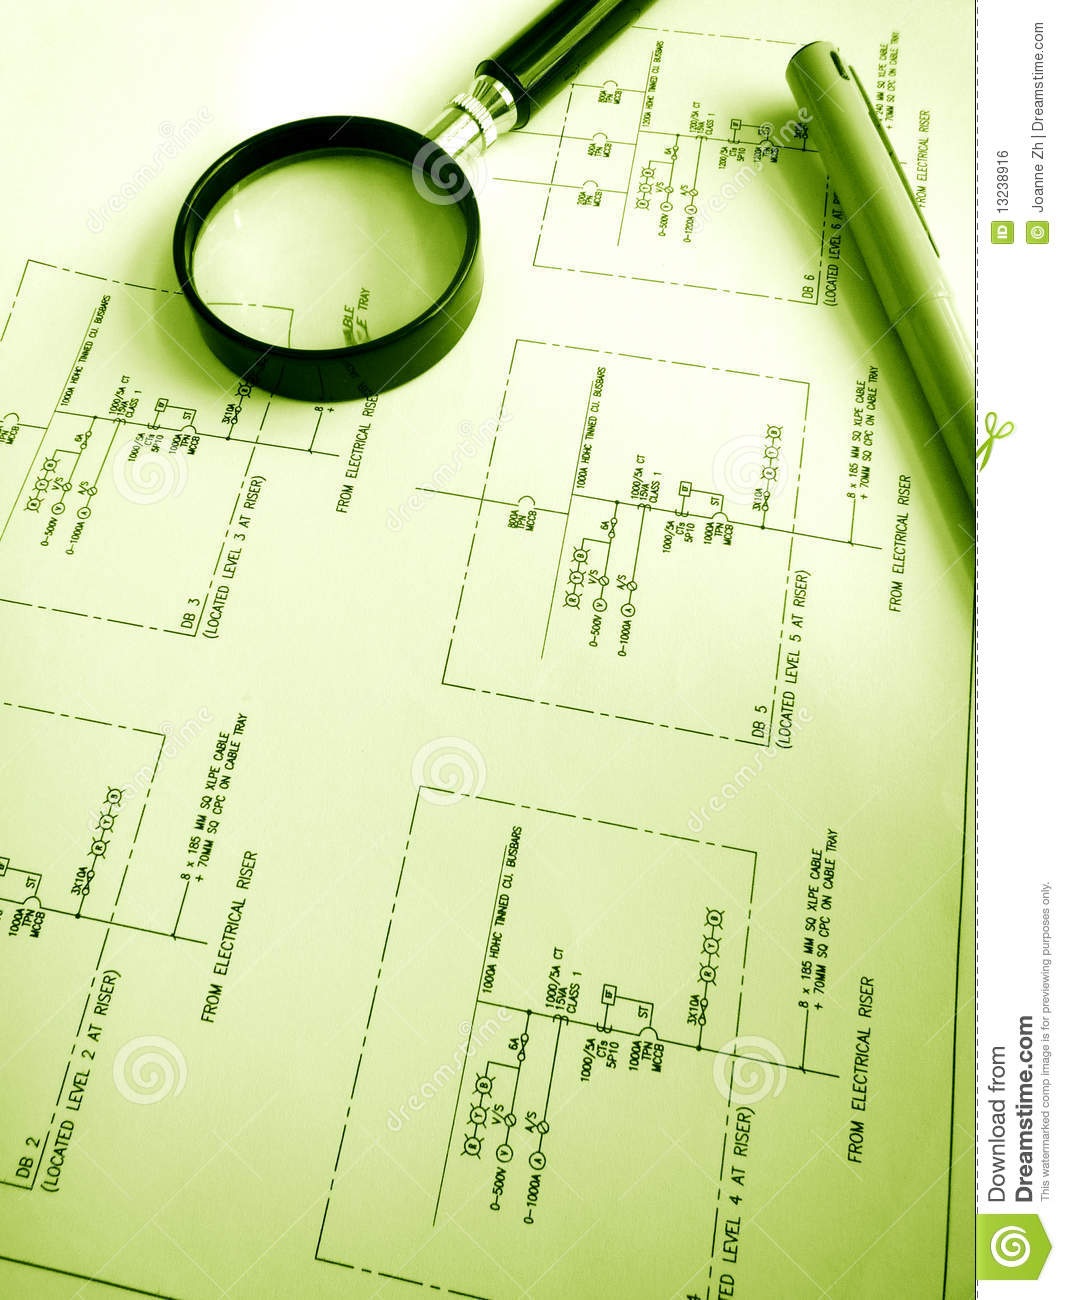 Studying electrical circuits plans royalty free stock for Planning electrical circuits